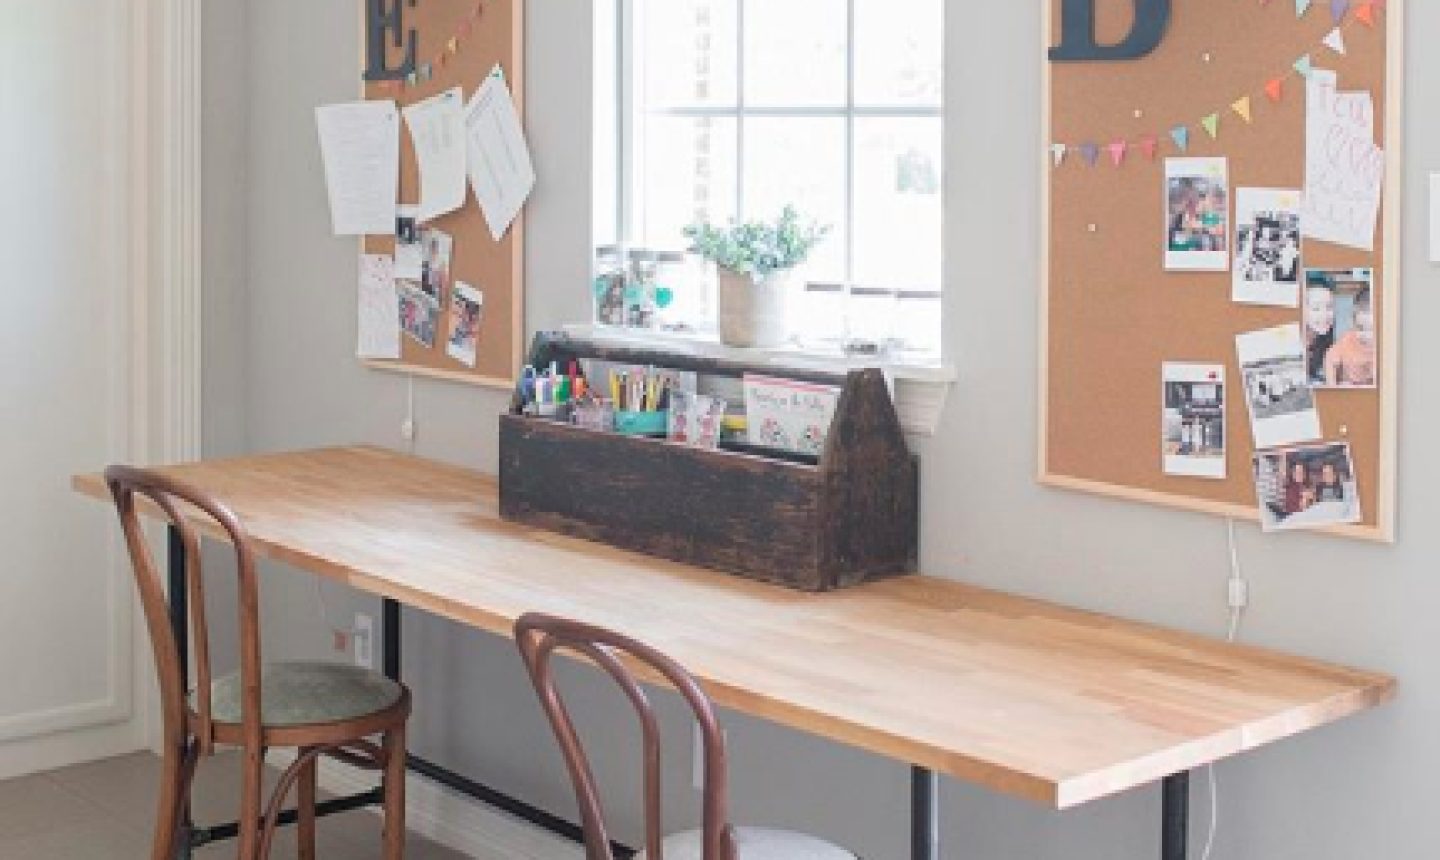 craft space with wooden table